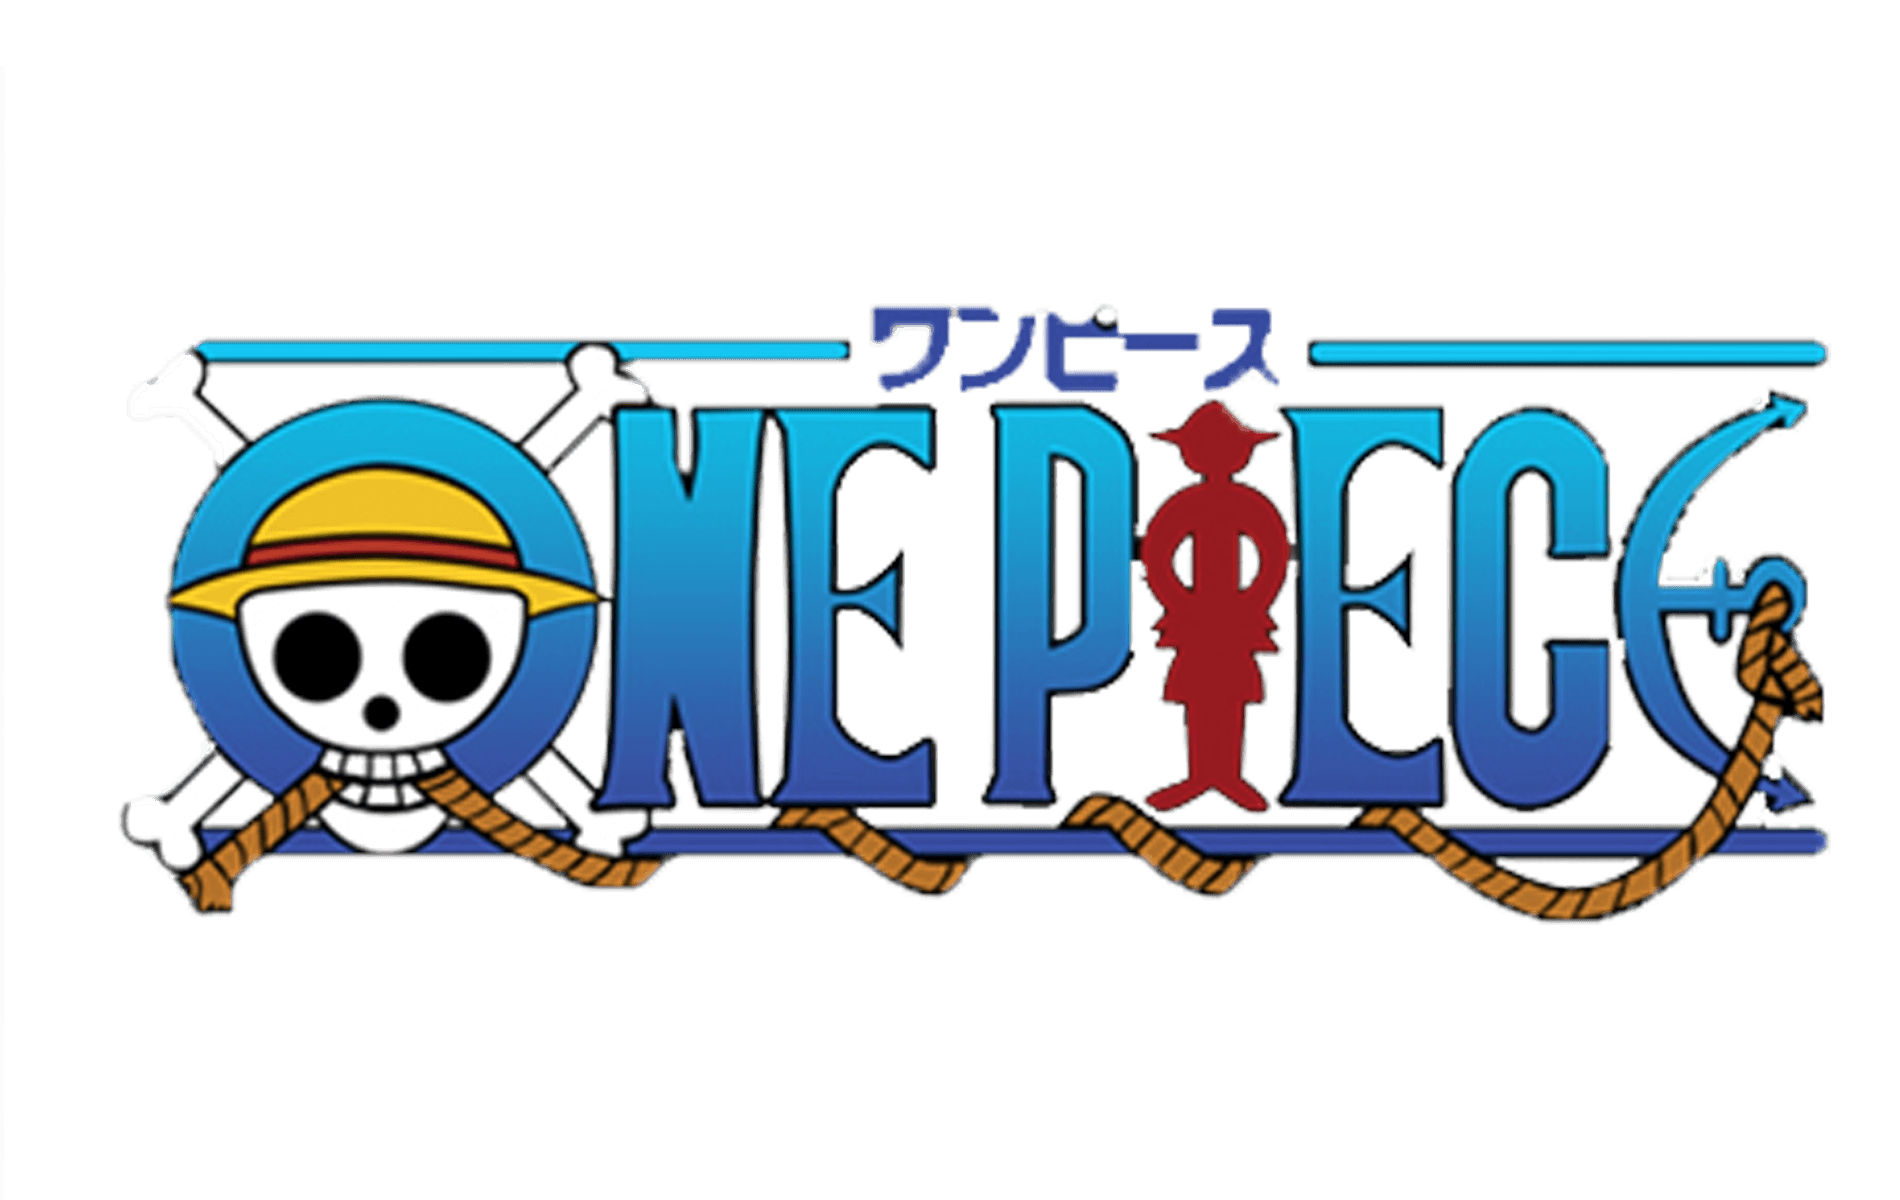 One Piece Logo Wallpapers.